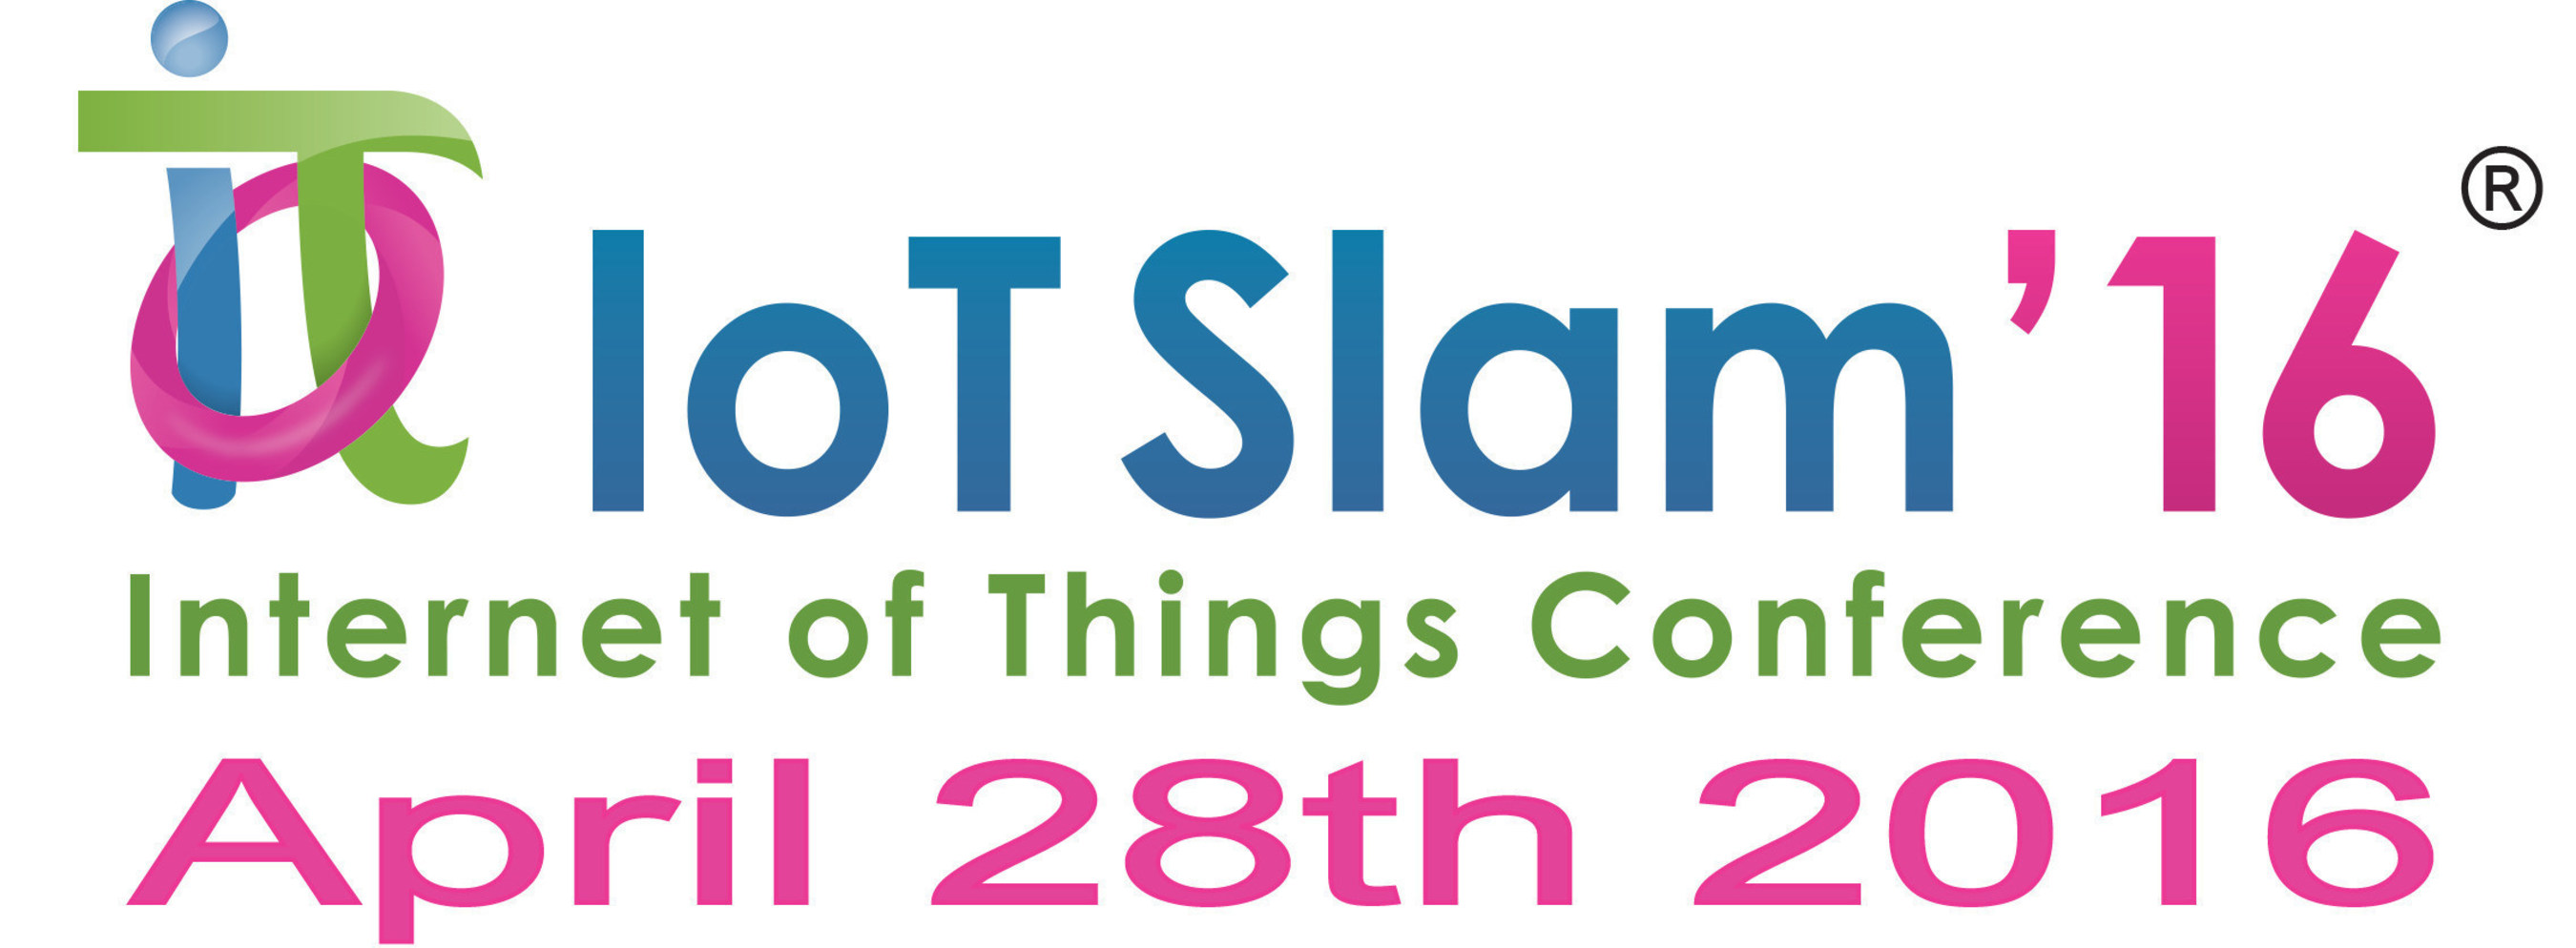 Internet of Things Community Announces IoT Slam 2016, The Second International IoT Virtual Conference